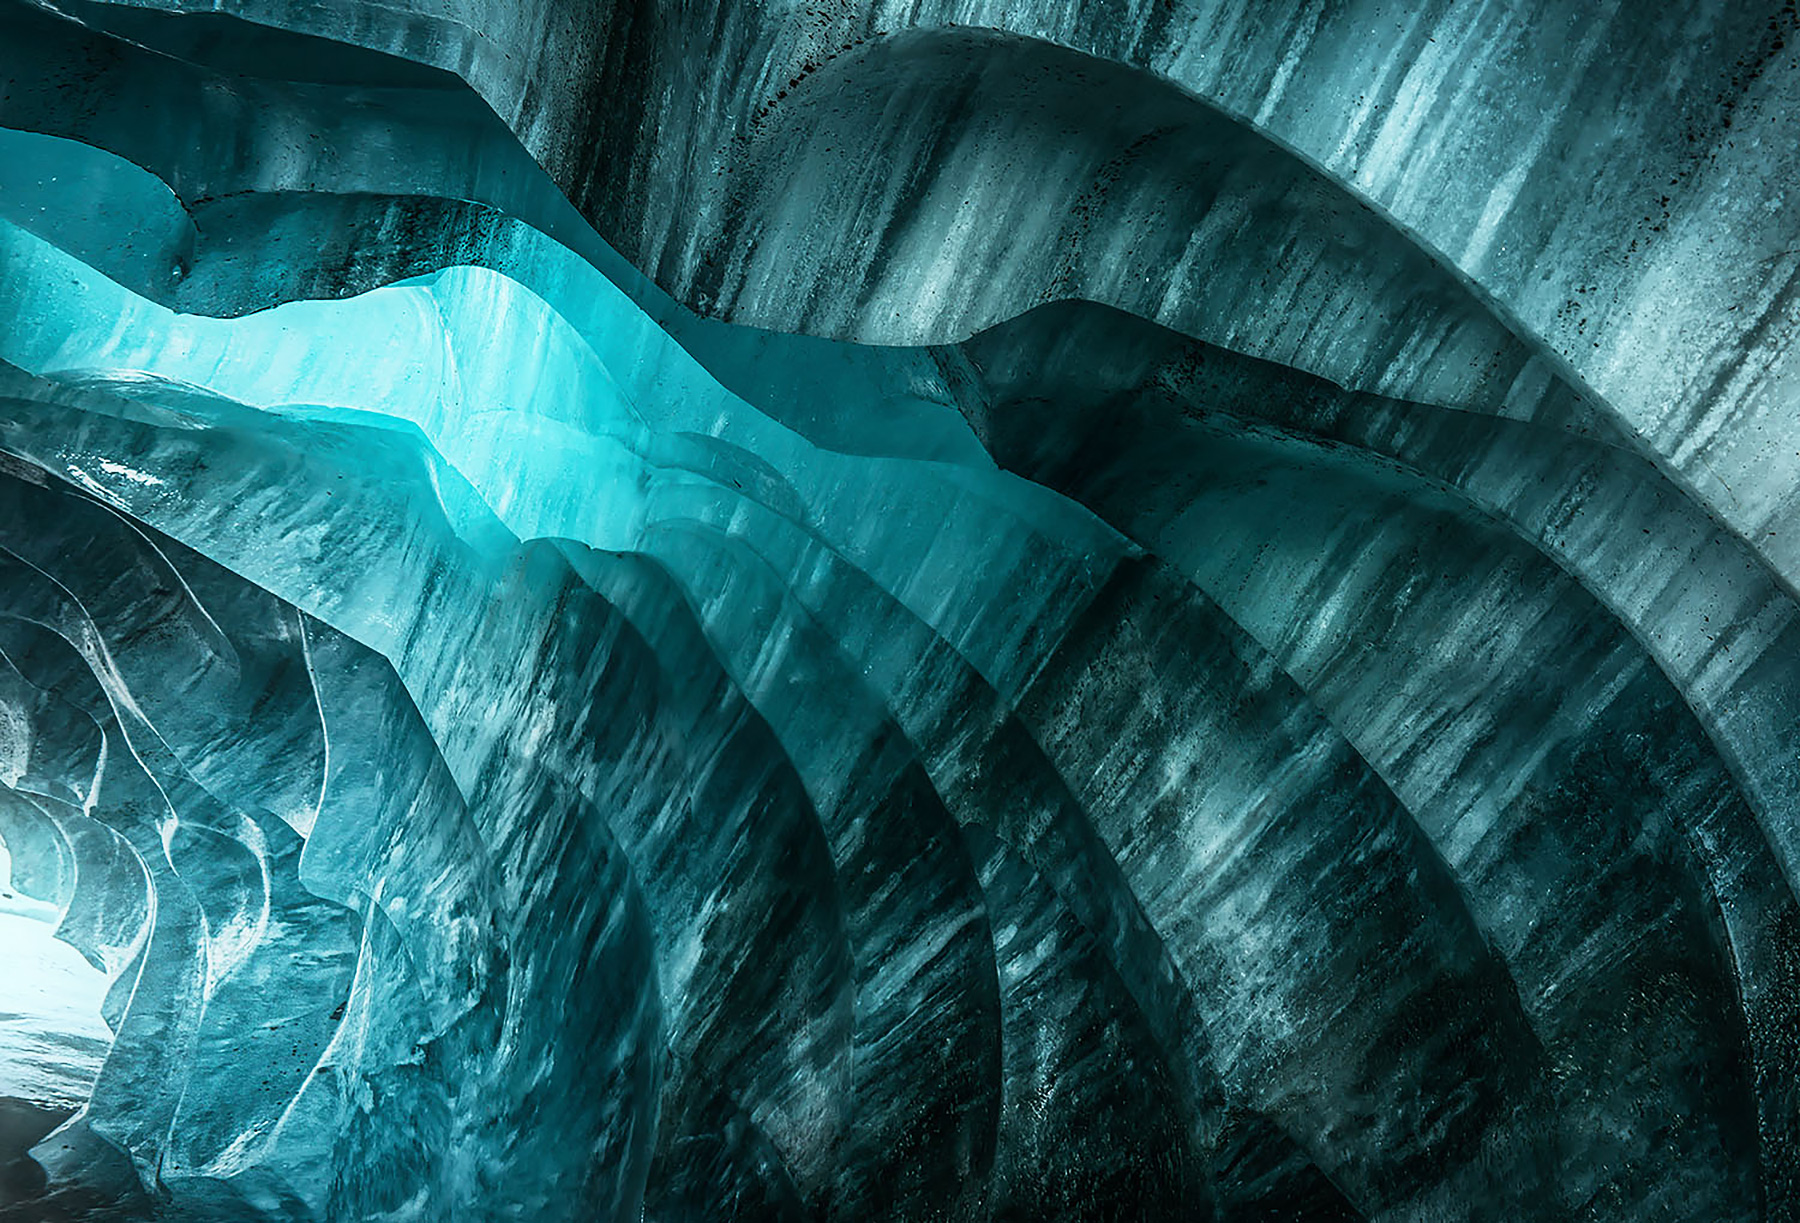 Alaska, ice cave, ice, blue, cold, frozen, photo